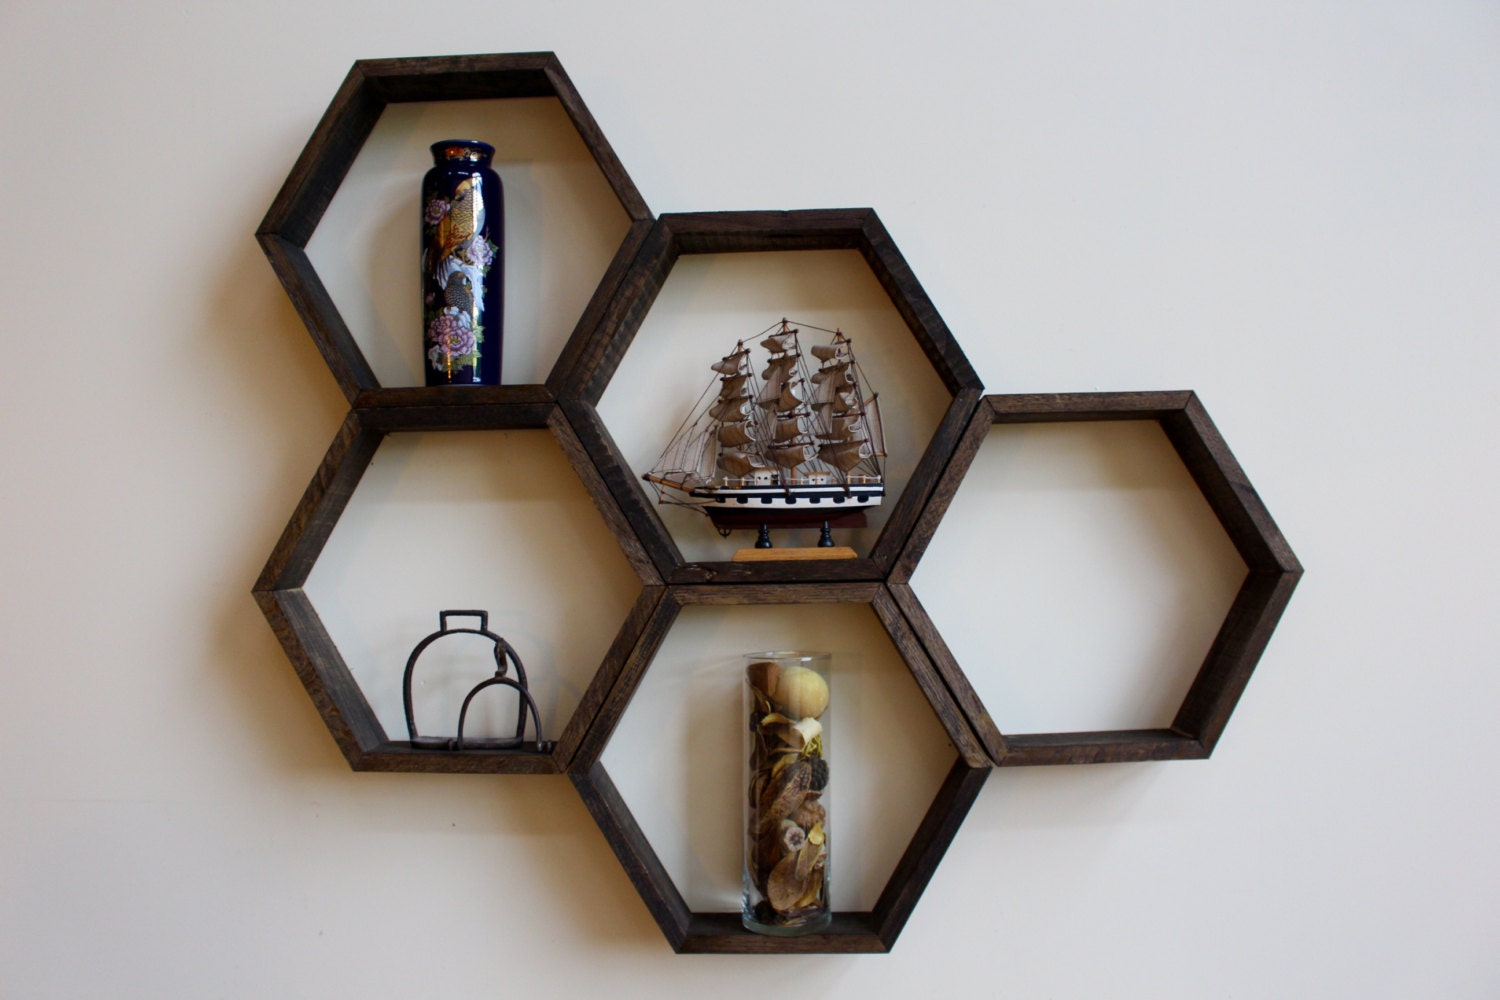 Wooden Honeycomb Hexagon Shelves Handmade Wall Decor Sets. Grey Carpet Living Room Ideas. Large Wall Decor For Living Room. Living Room Dining. Transitional Living Rooms. Cool Posters For Living Room. Living Room Decor With Leather Furniture. Living Room With Red Sofa. Faux Leather Living Room Set